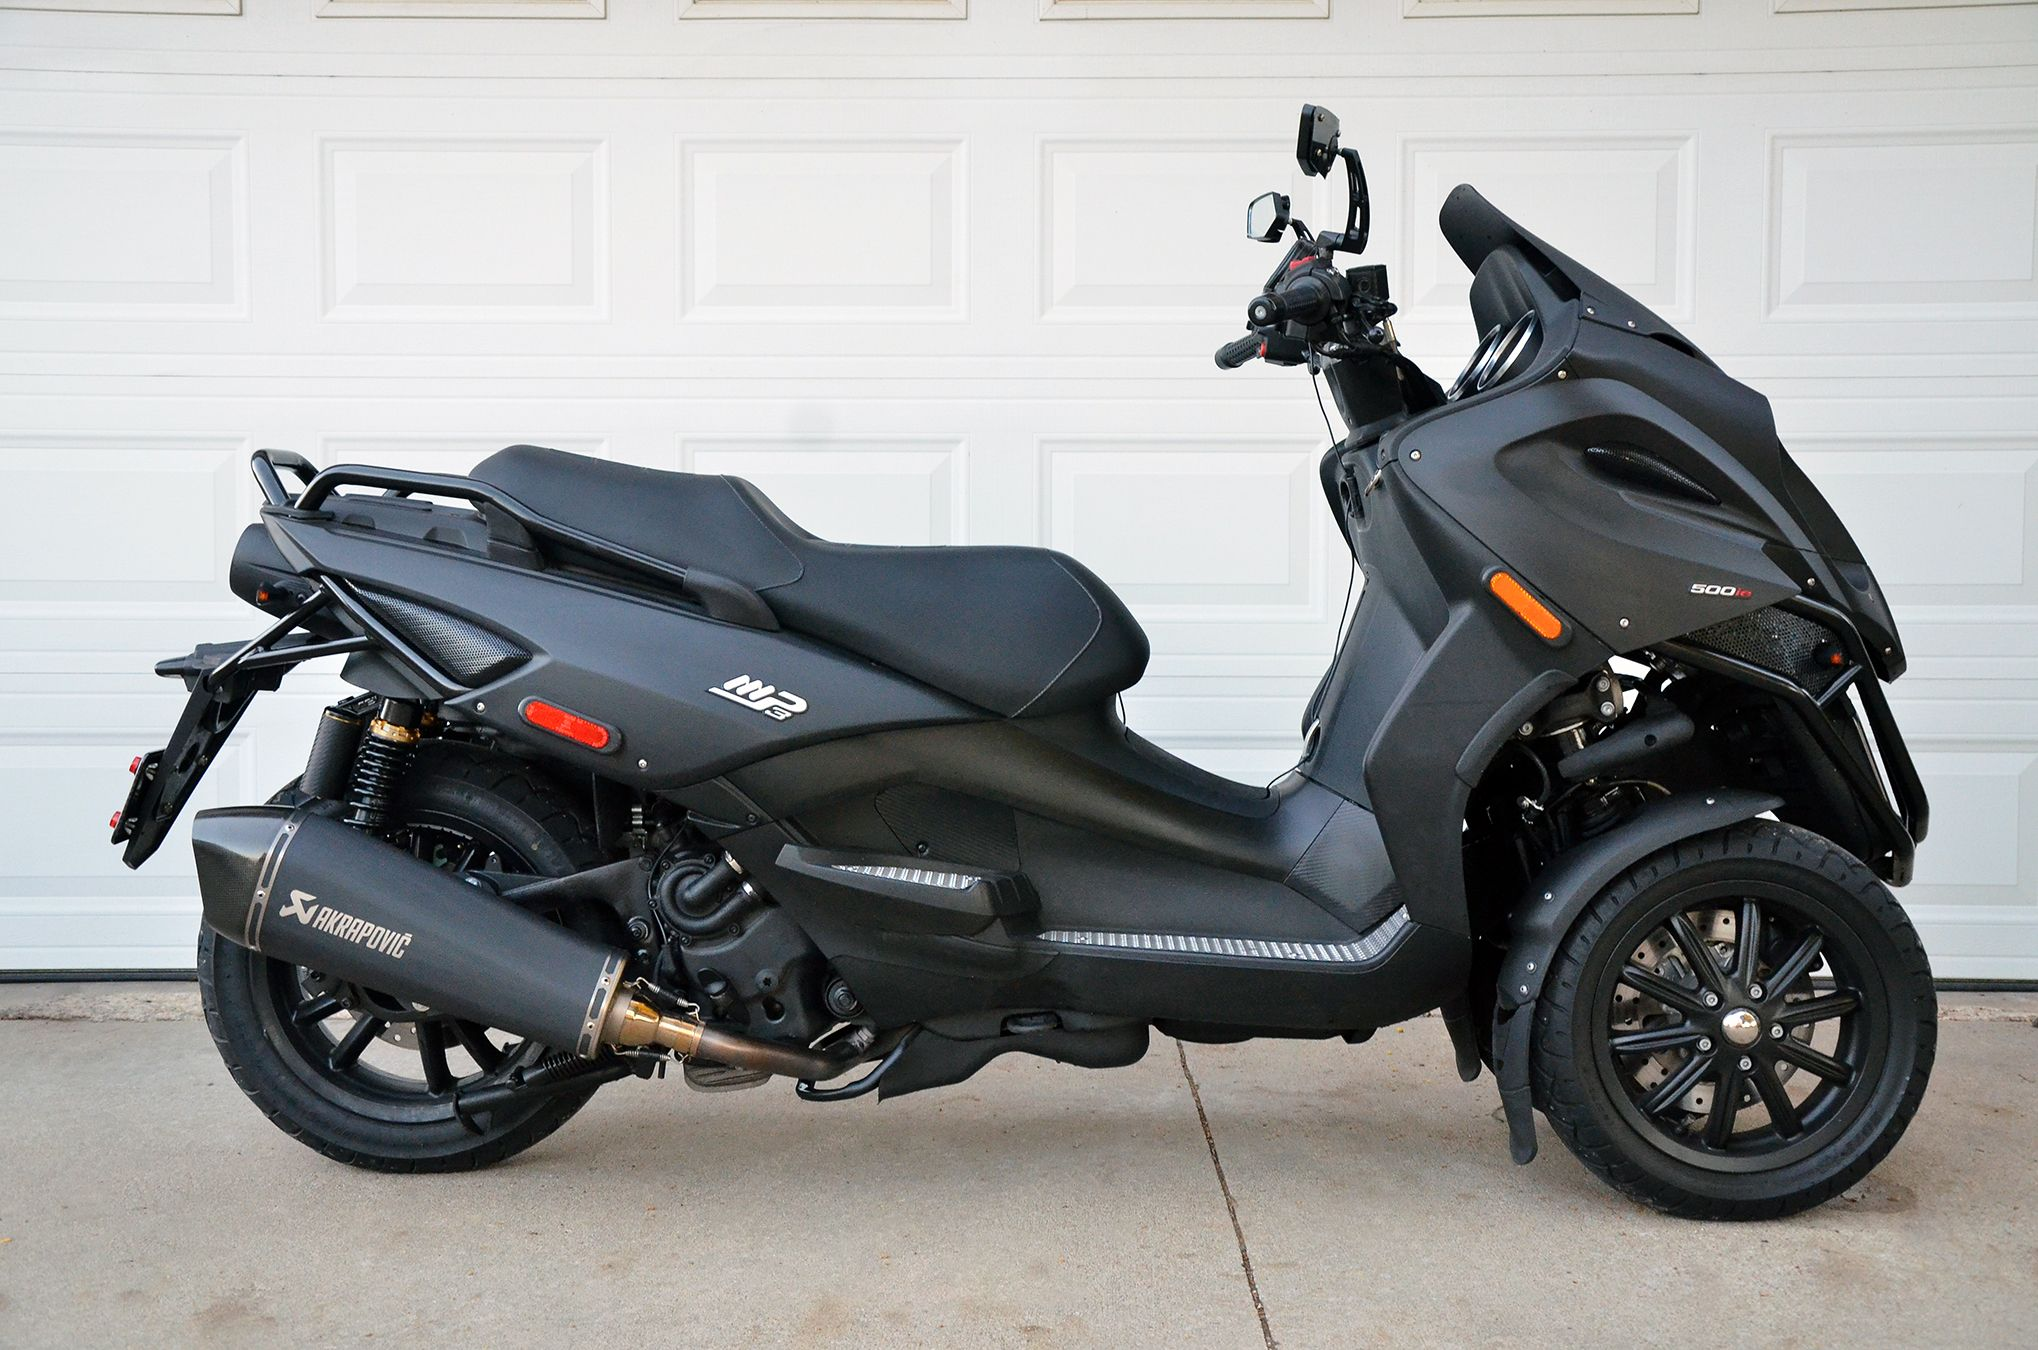 My custom '09 Piaggio MP3 500ie / Gilera Fuoco 500. Added lowered nitrogen shocks in the back, Akrapovic exhaust, custom mirrors & LED blinkers. Blacked out belly pan, swing arm & engine. Painted body panels in Rust-oleum Flexi-dip rubberized paint.